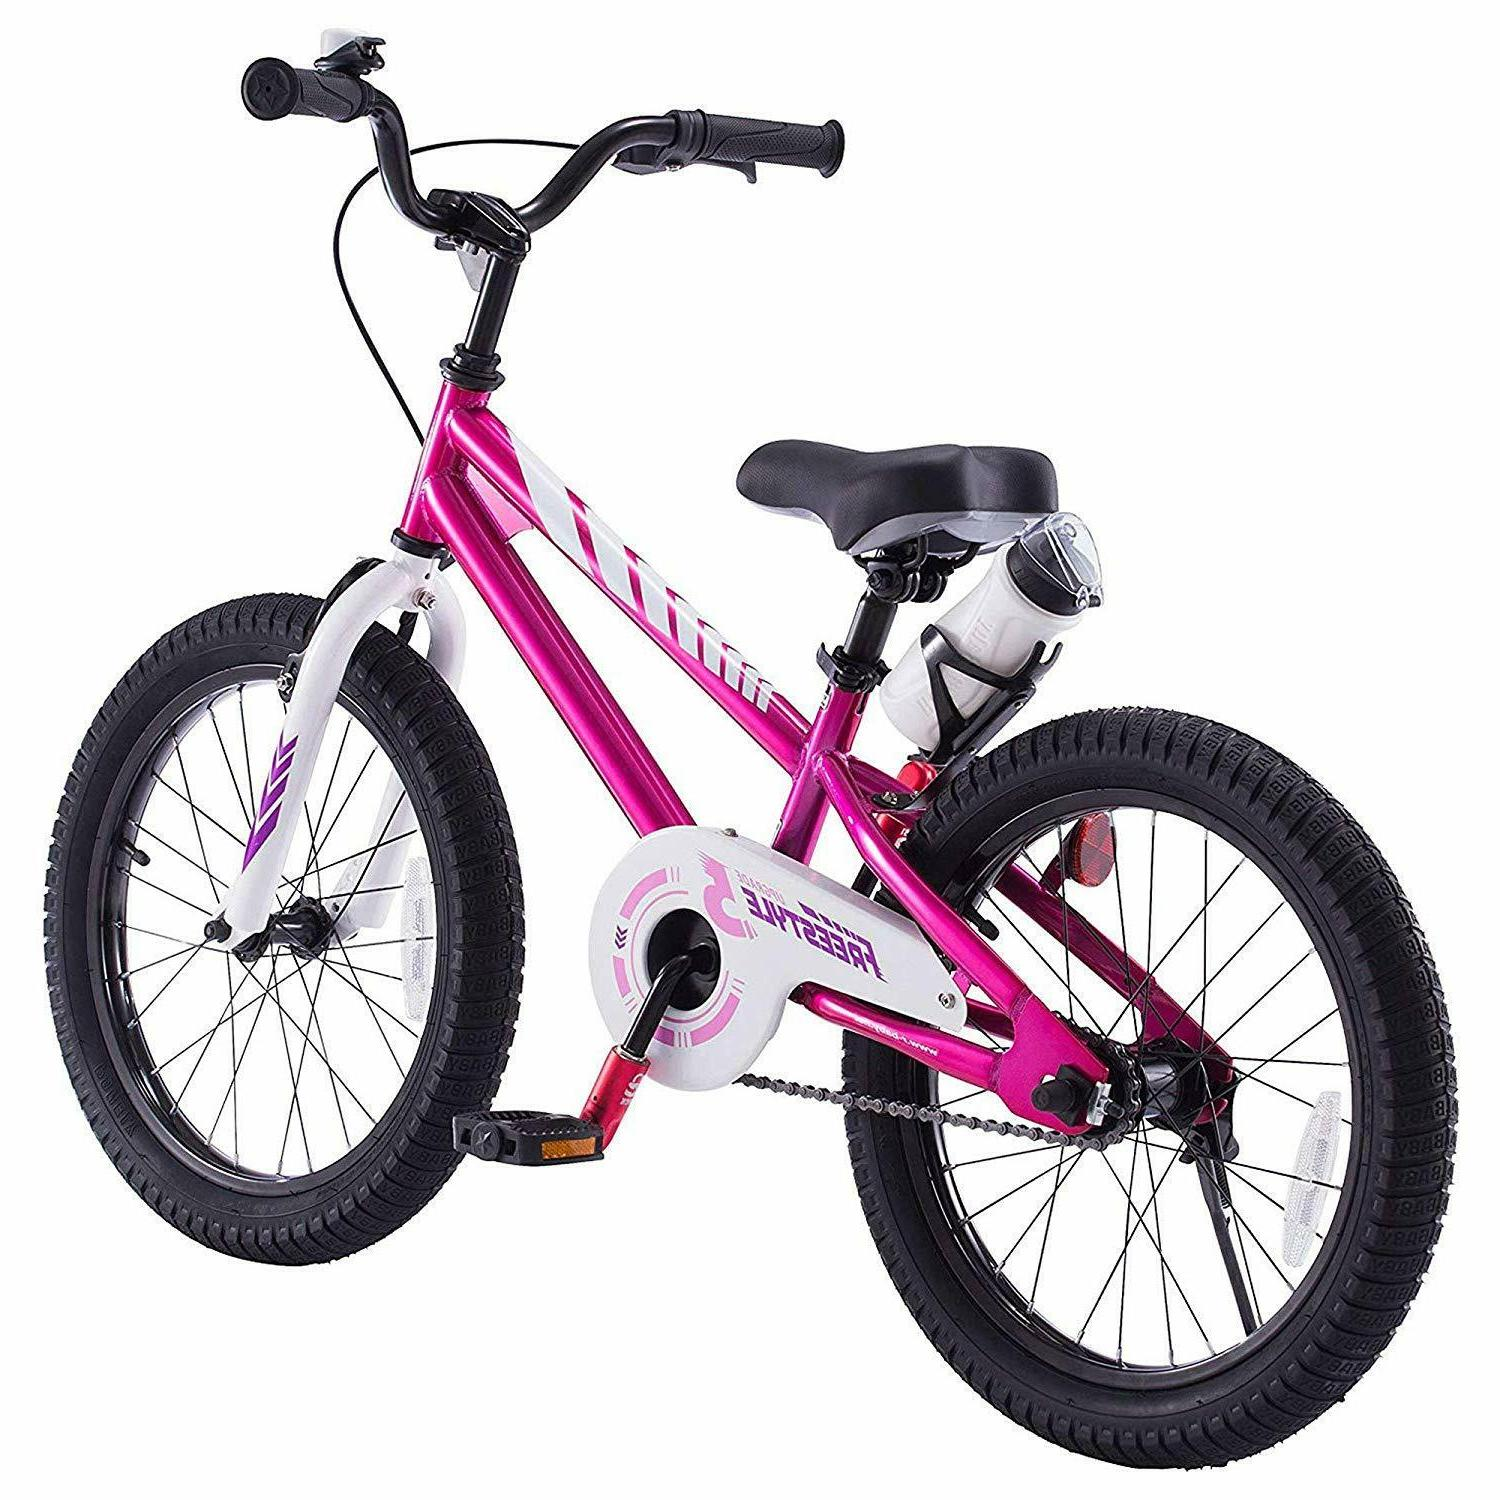 Boys 18'' Bike With Caliper and Rear For